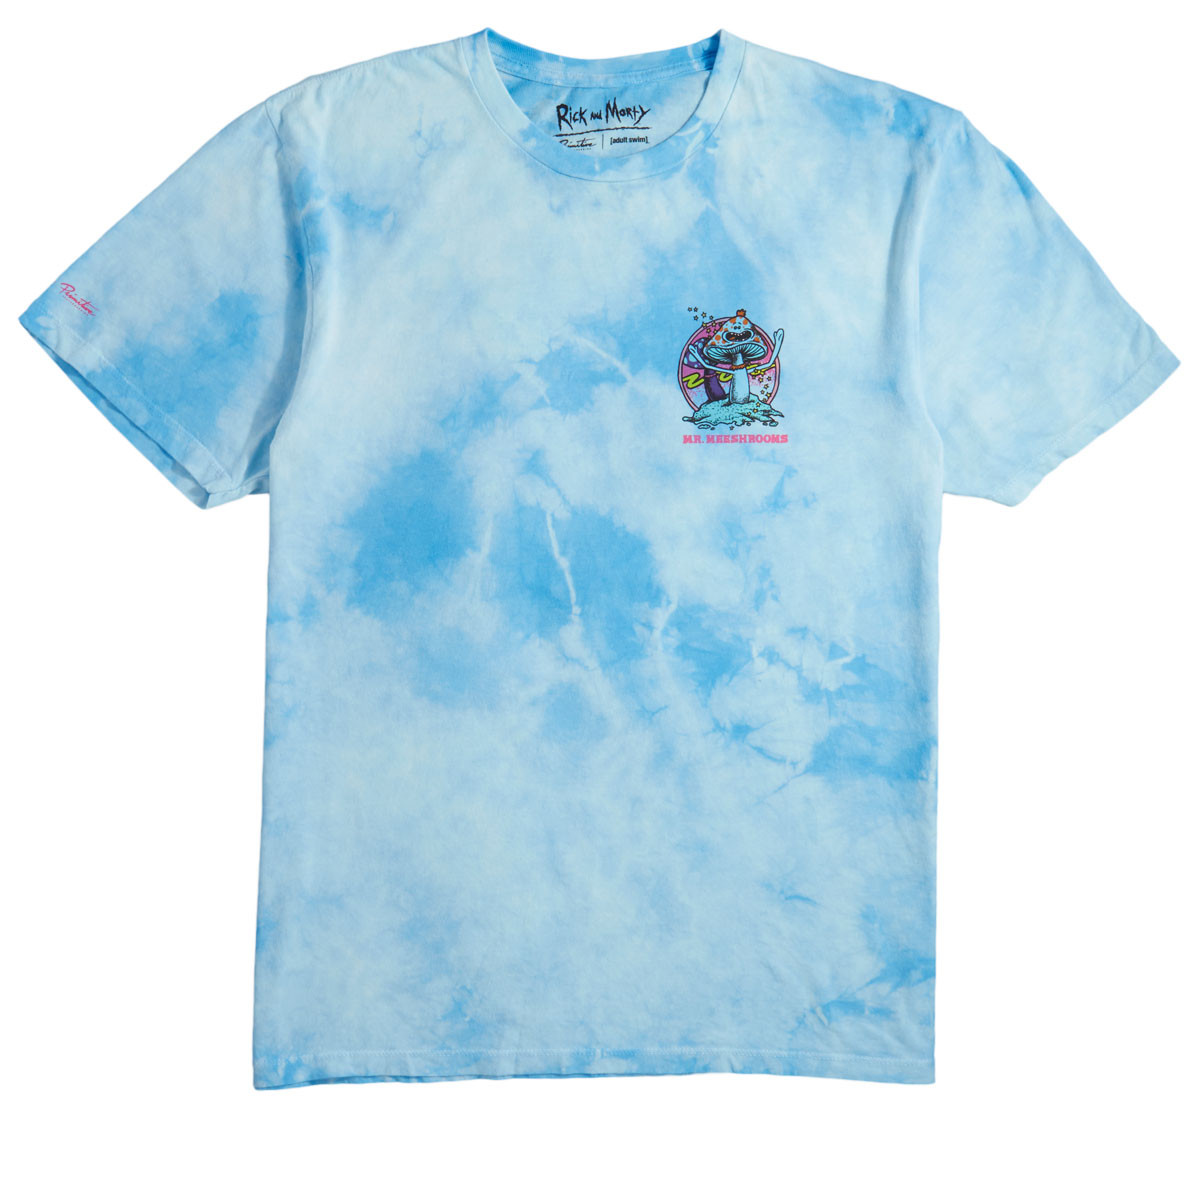 tanie jak barszcz najnowszy dobra obsługa Primitive x Rick and Morty Mr. Meeshrooms T-Shirt - Light Blue Wash